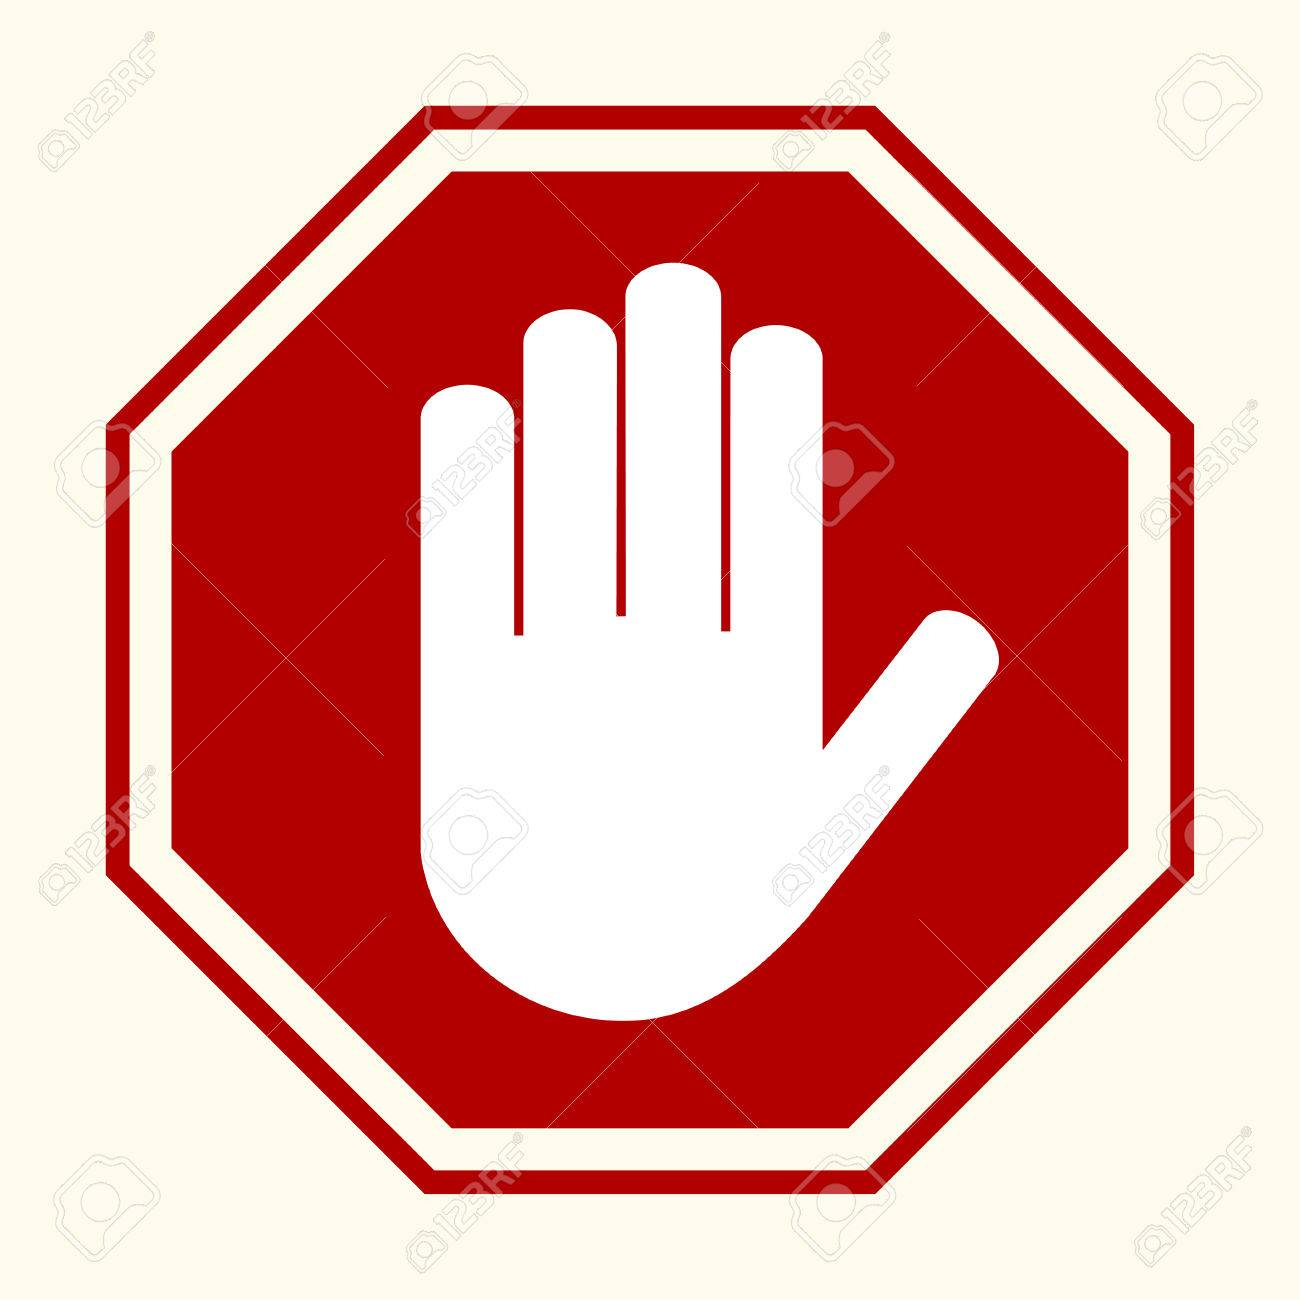 stop sign white hand in red octagonal vector royalty free cliparts rh 123rf com stop signal vector stop signal vector